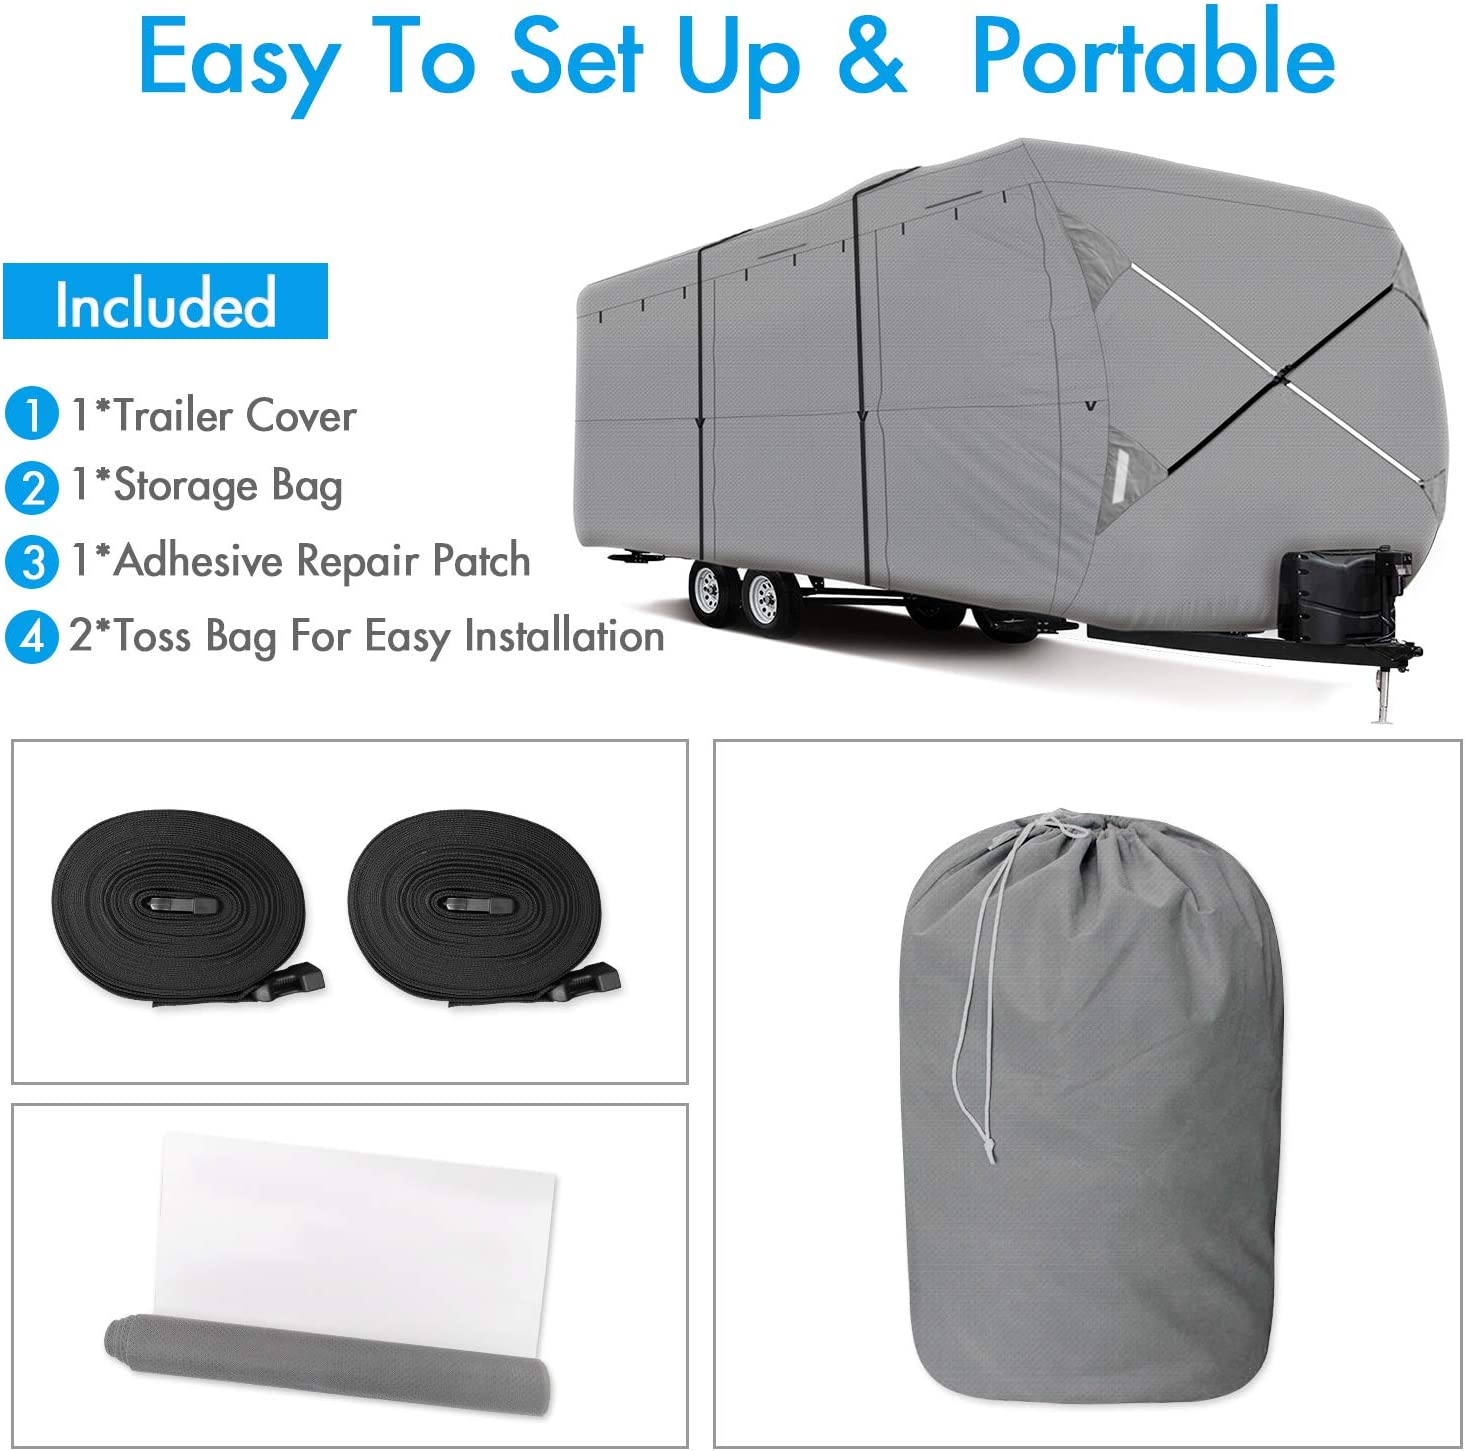 Ripstop Waterproof RVs Covers with Storage Bag and Windproof Buckles XGEAR Thick 3-Ply Top Panel Travel Trailer Cover 27-30